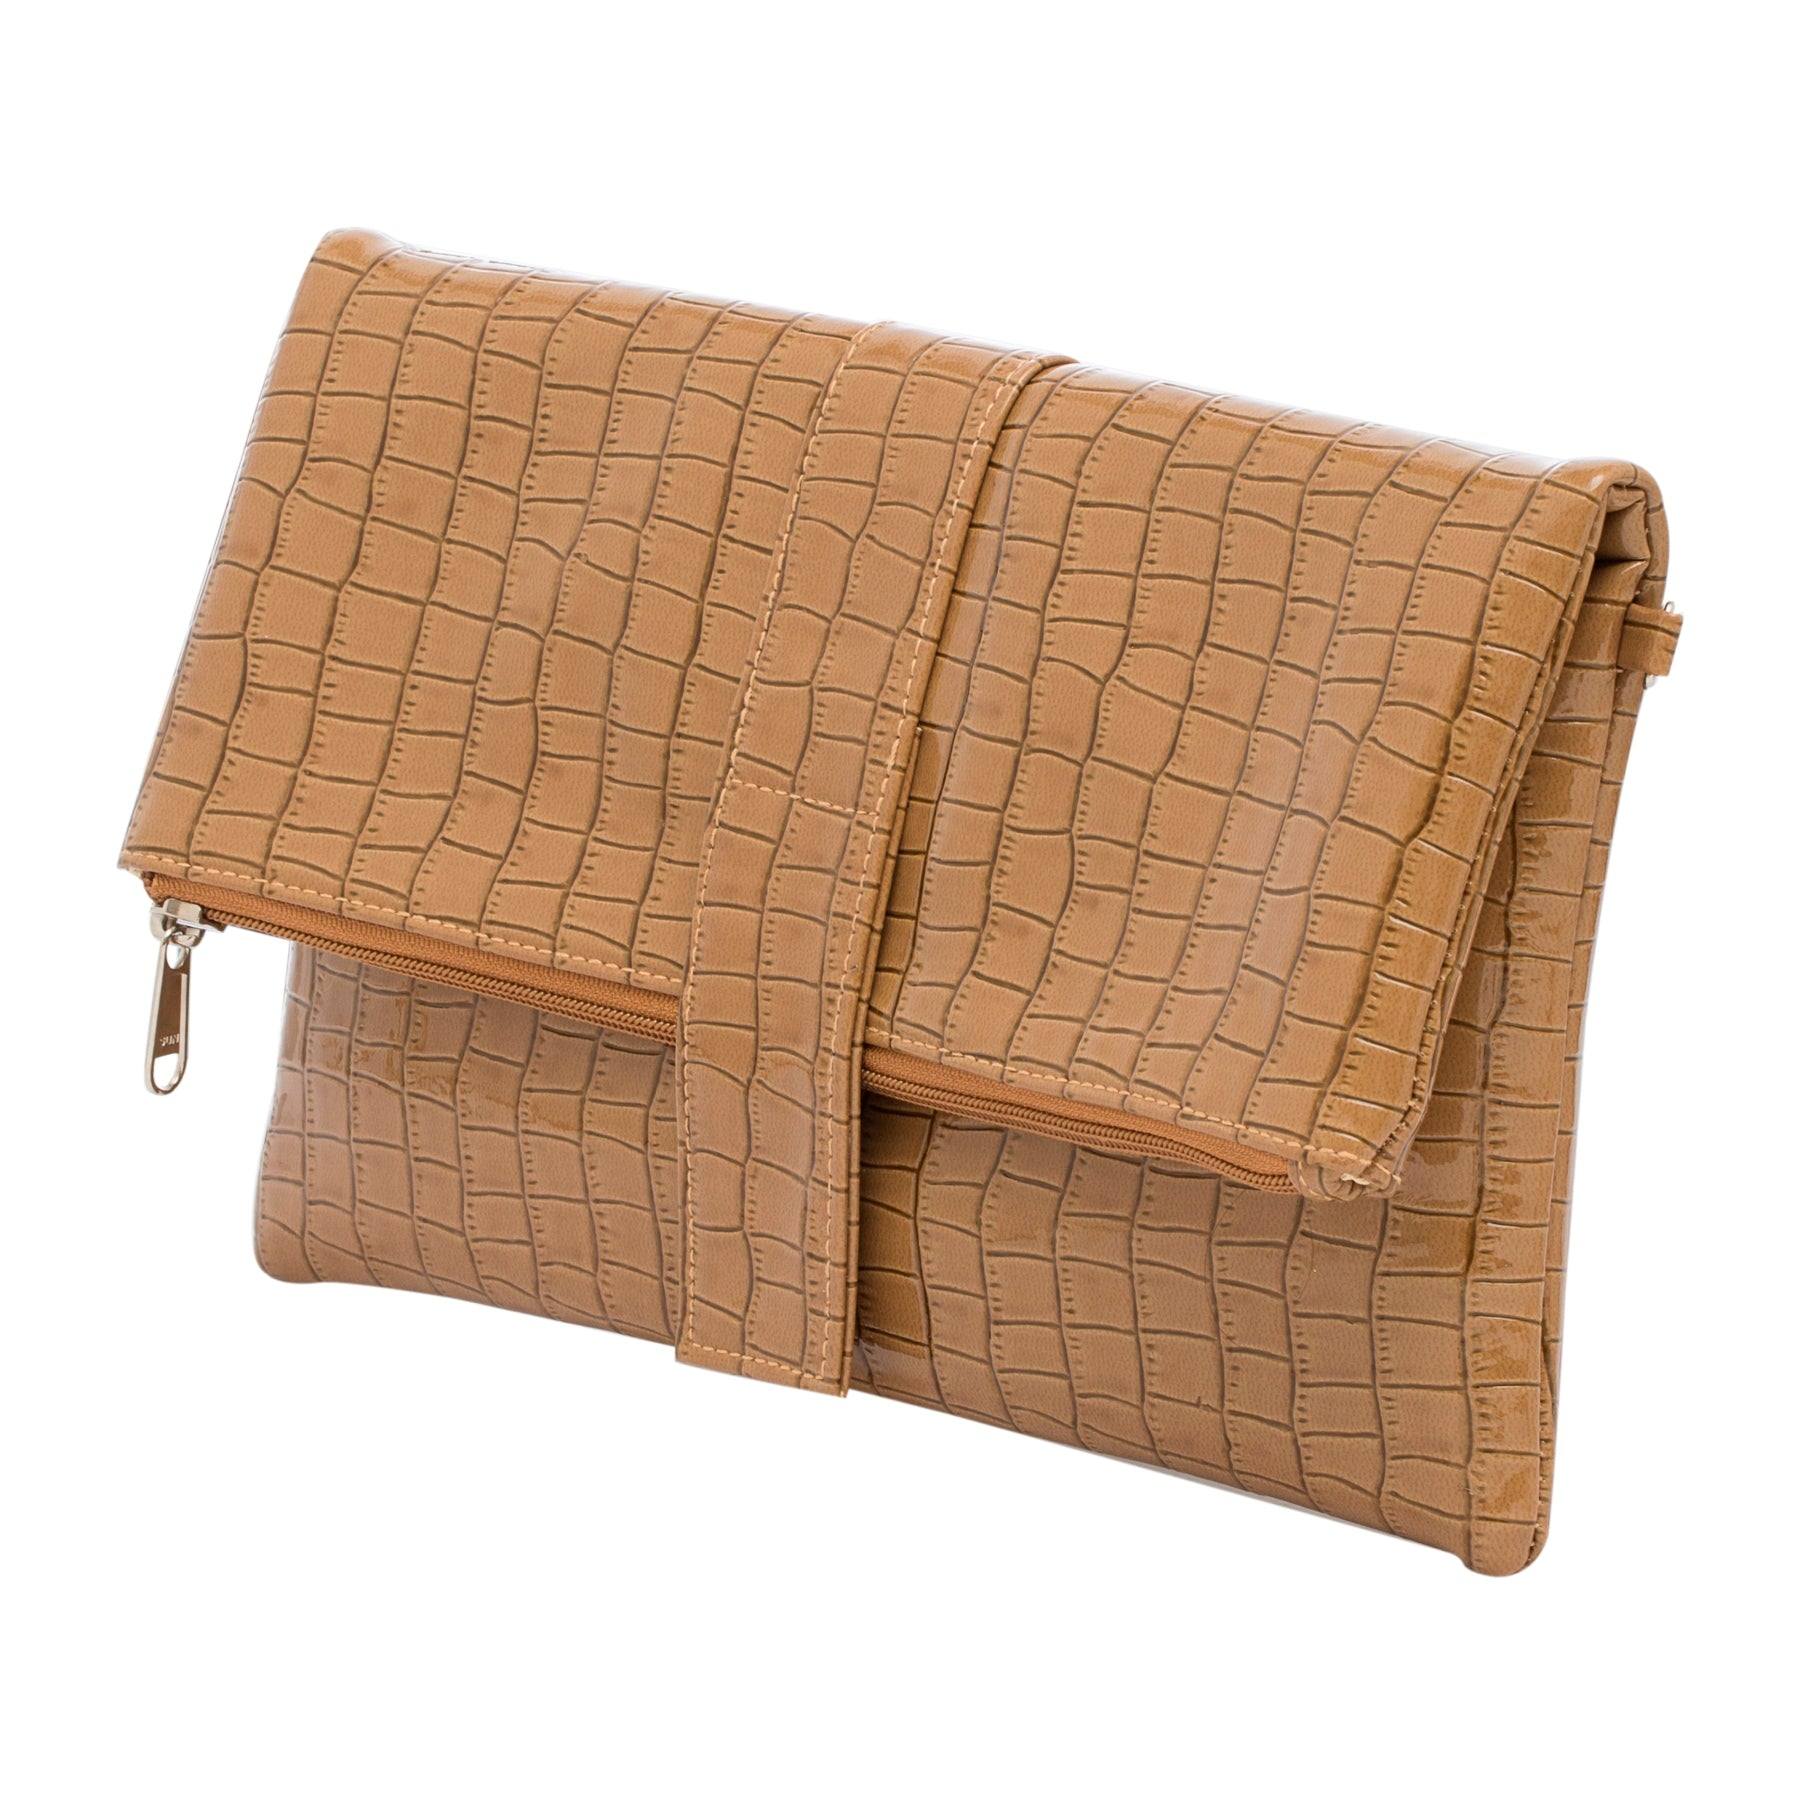 Showcasing a structured silhouette, this Brown Foldover Clutch by Tarusa is a real head turner. Featuring a sleek profile with Zipper closure, it has multiple slots to accommodate hard cash and plastic currency in a safe manner. Made of Faux Leather material, it is durable as well.